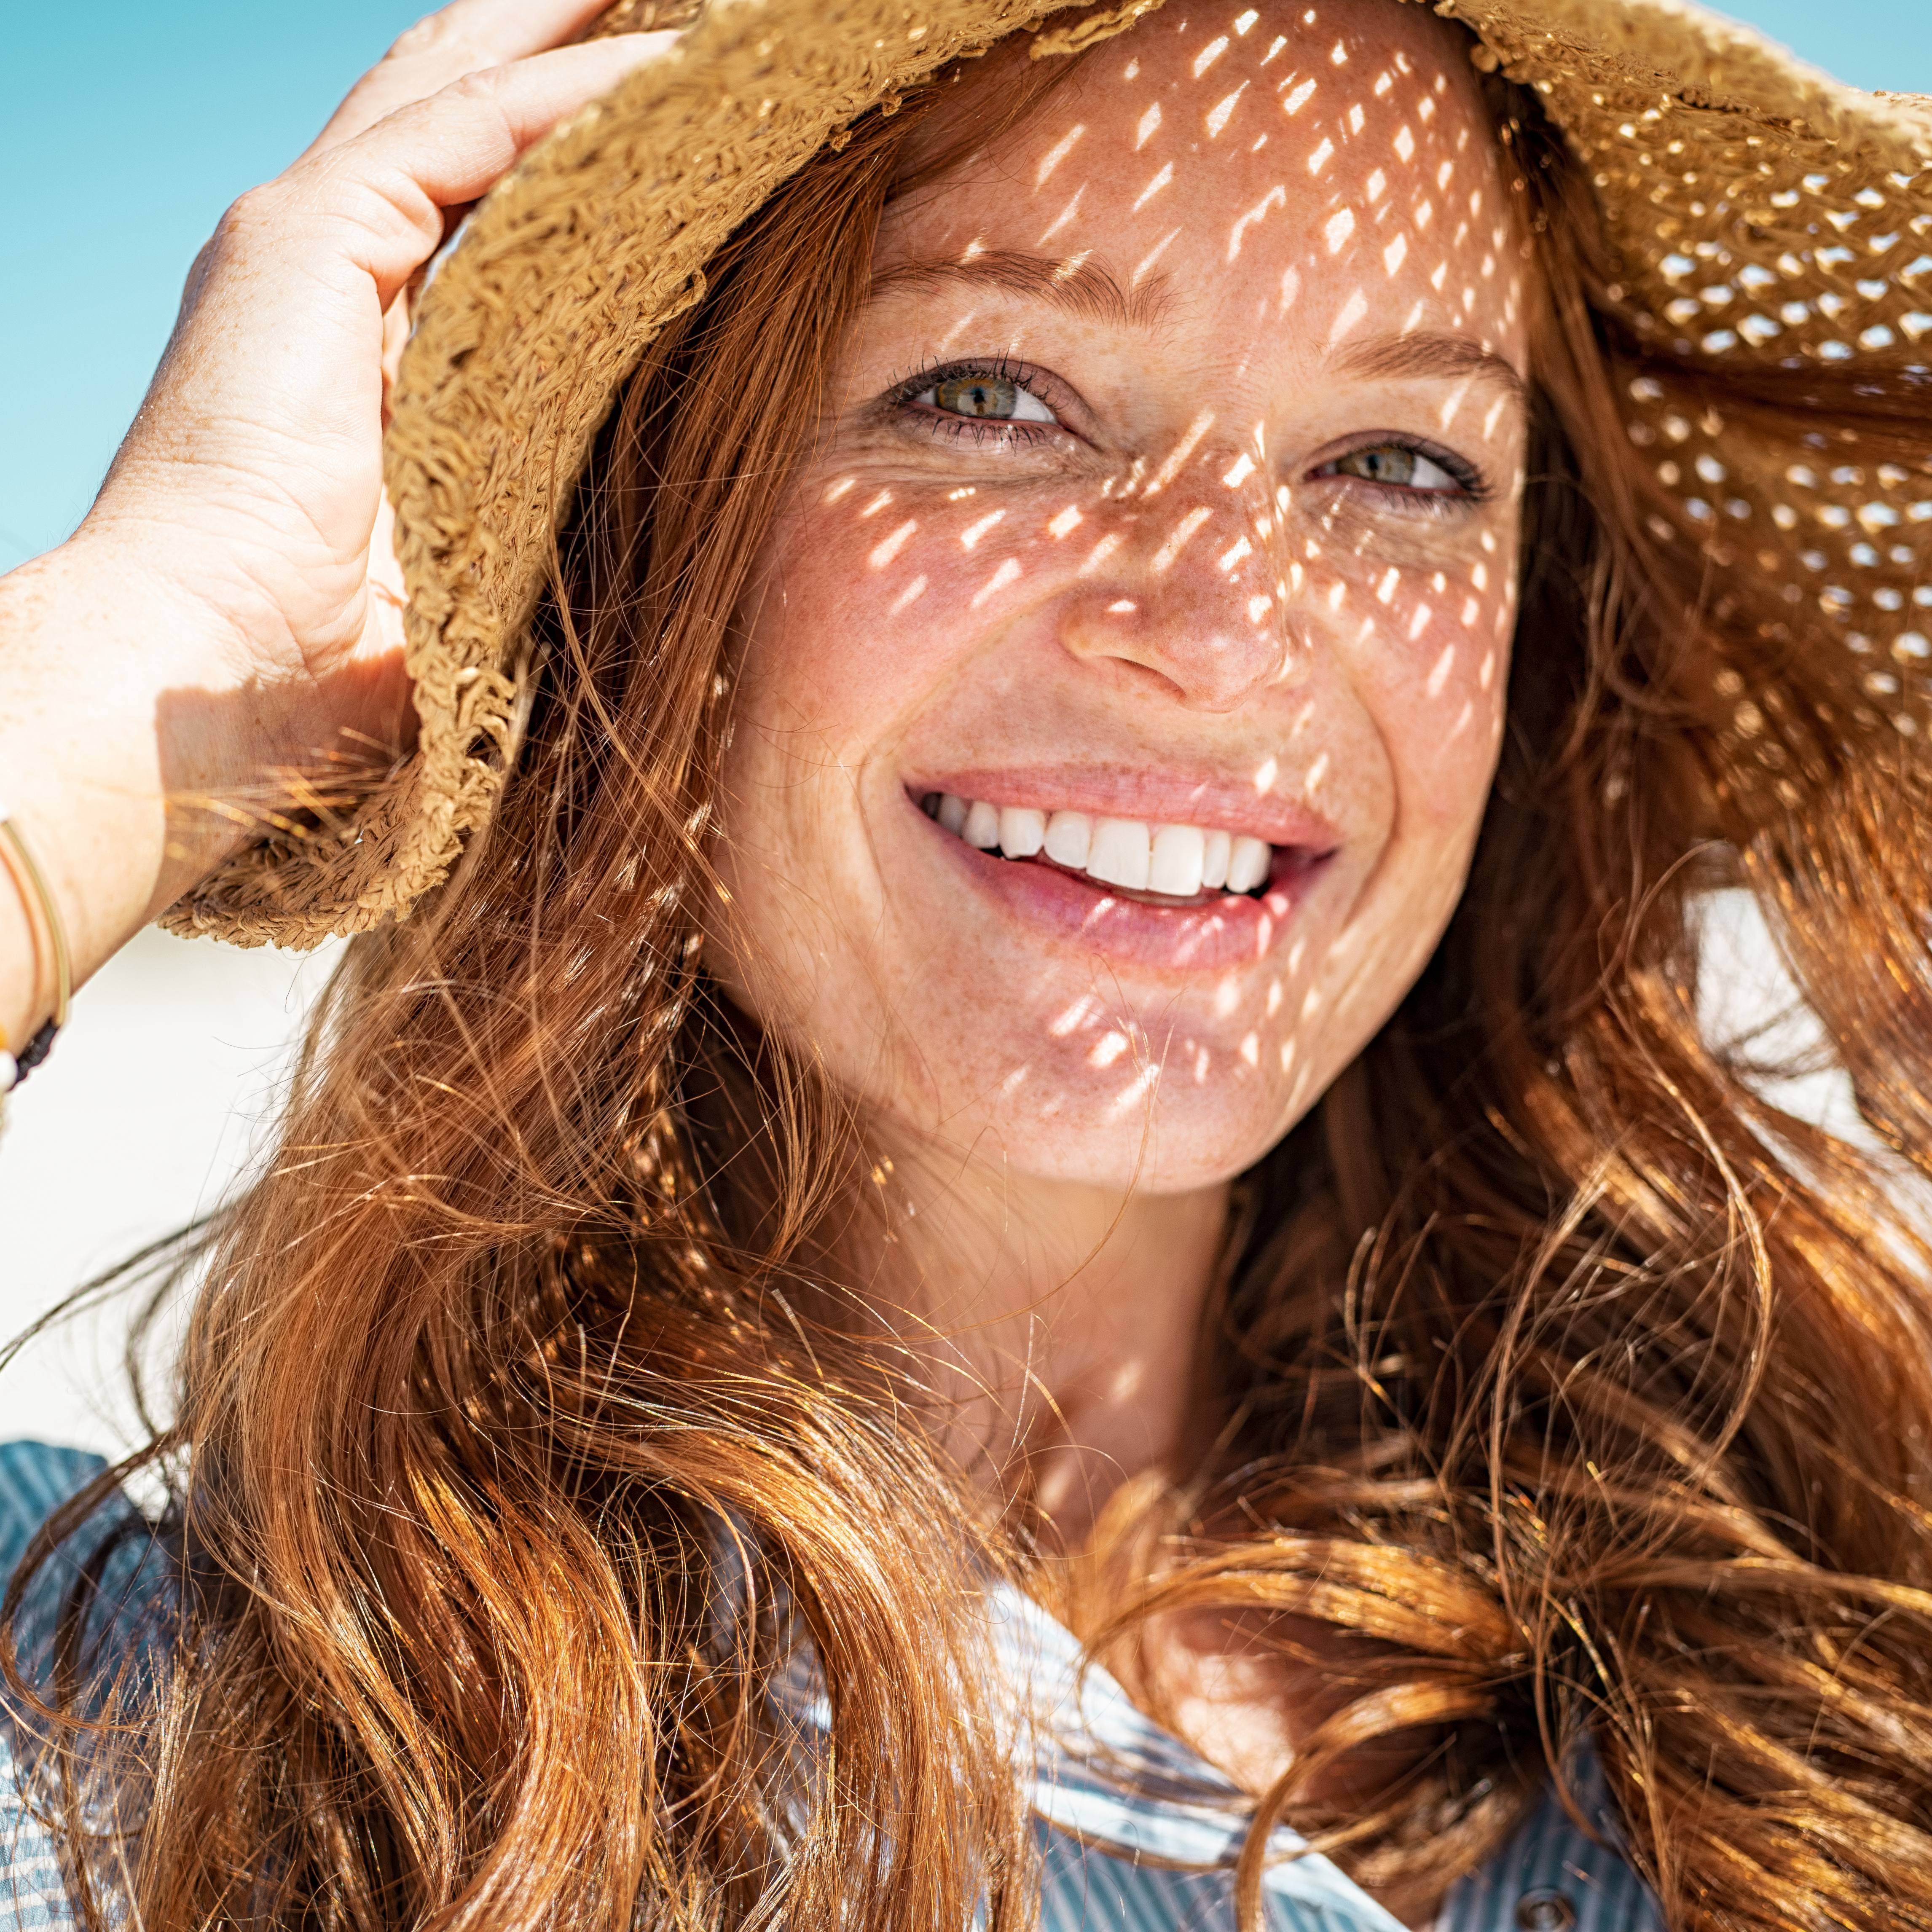 a smiling middle-aged woman in a straw hat outside on a sunny day